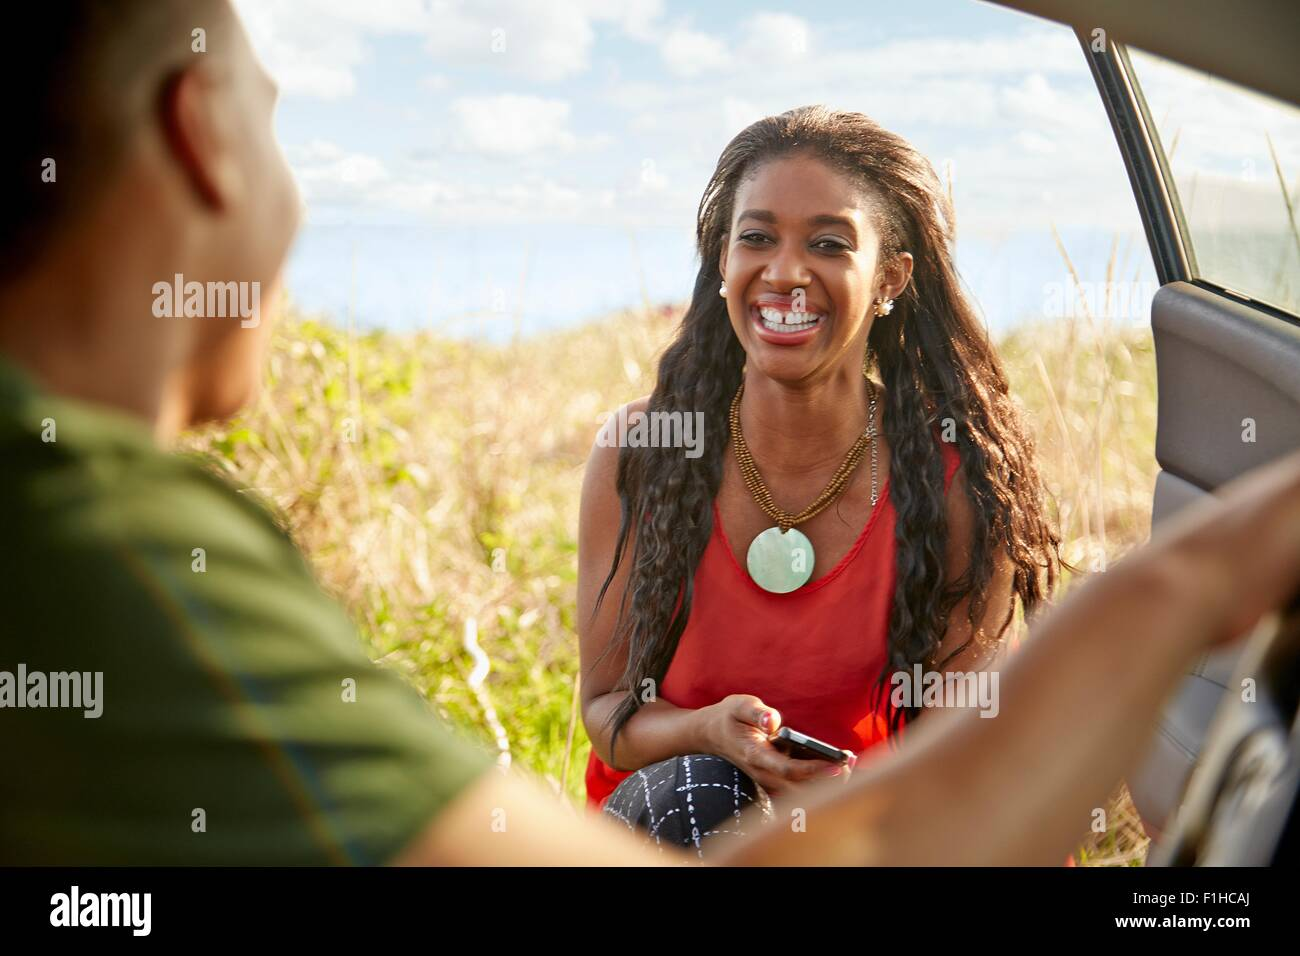 Young woman at open car door holding smartphone smiling - Stock Image